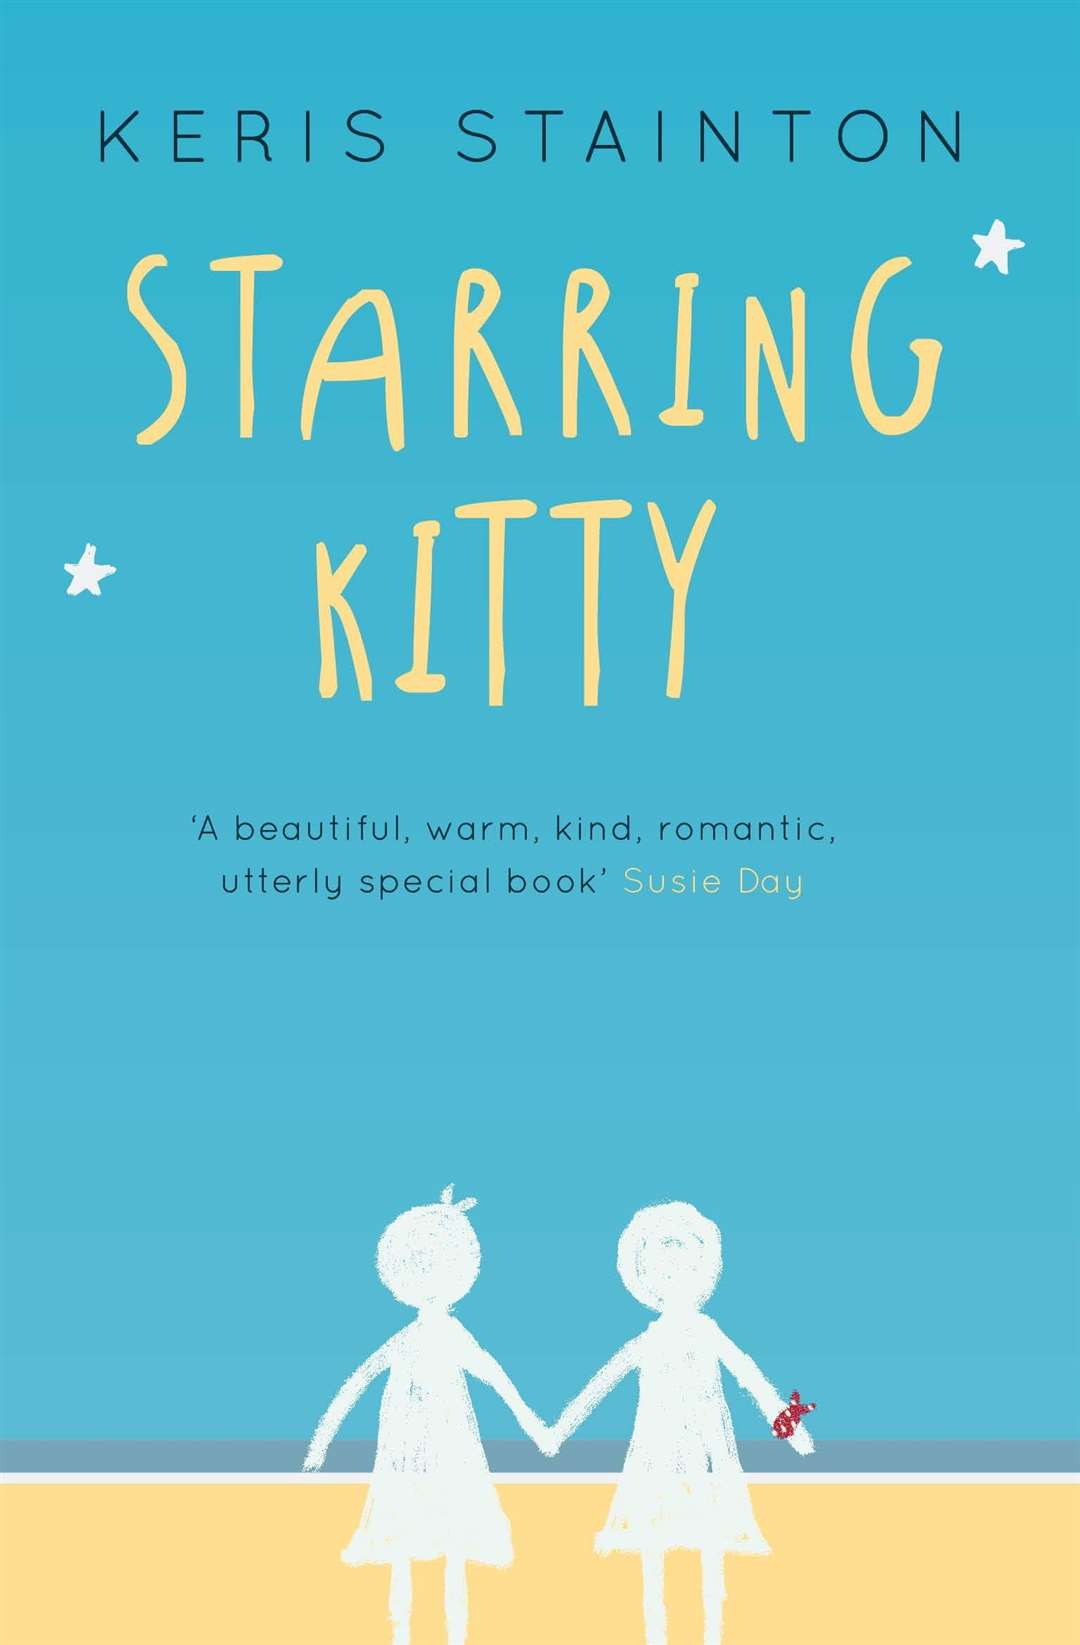 Starring Kitty by Keris Stainton (44164552)